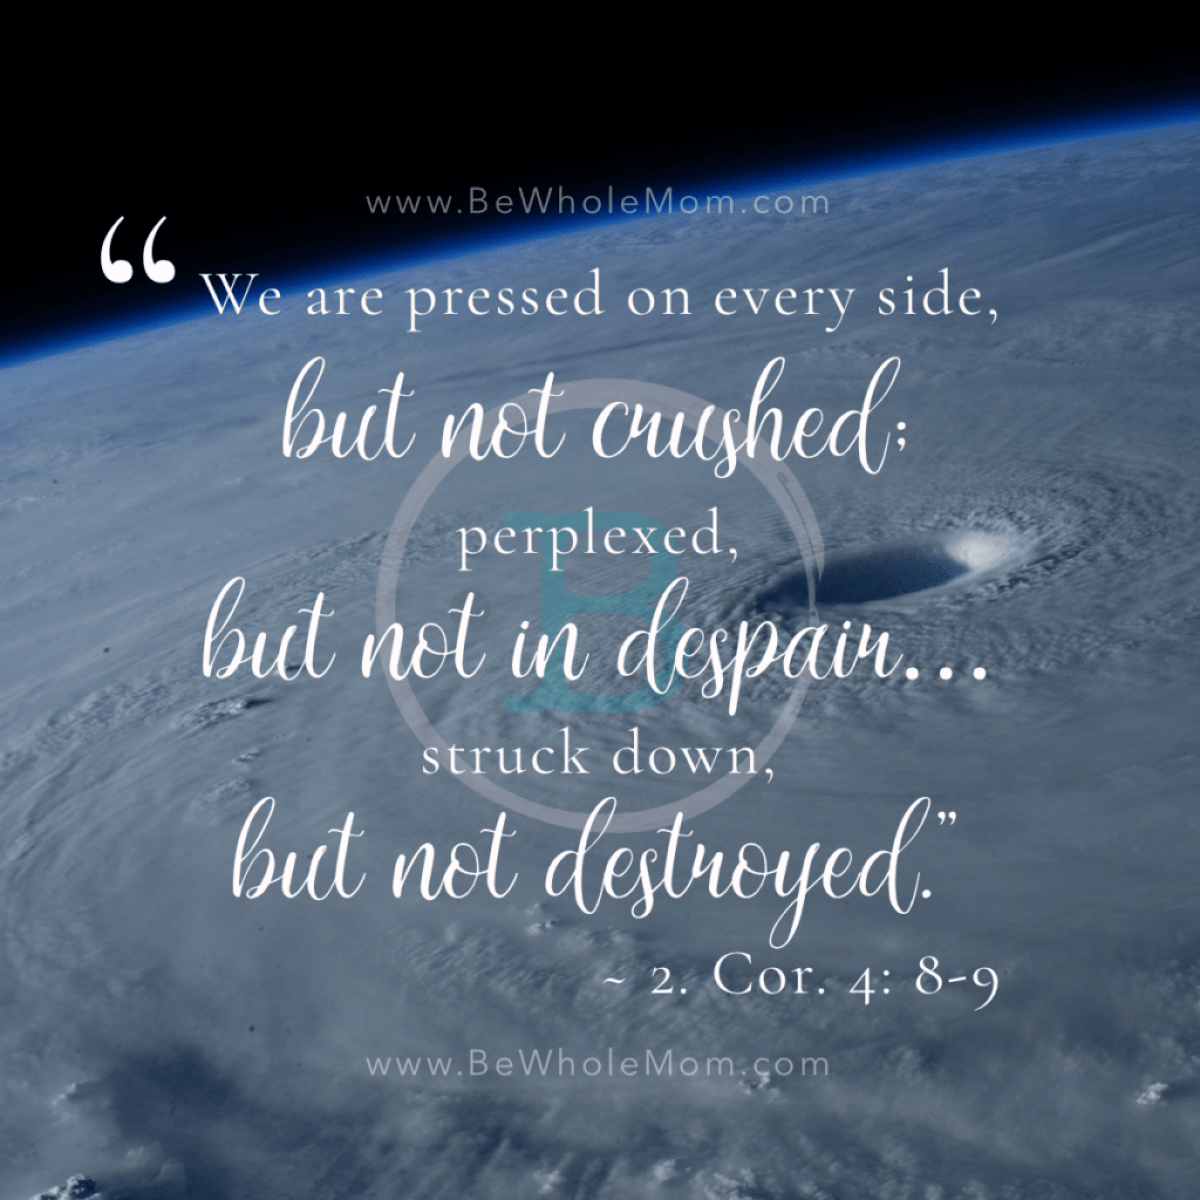 We are pressed but not crushed; perplexed, but not in despair; struck down but not destroyed. - 2 Cor. 4: 8-9